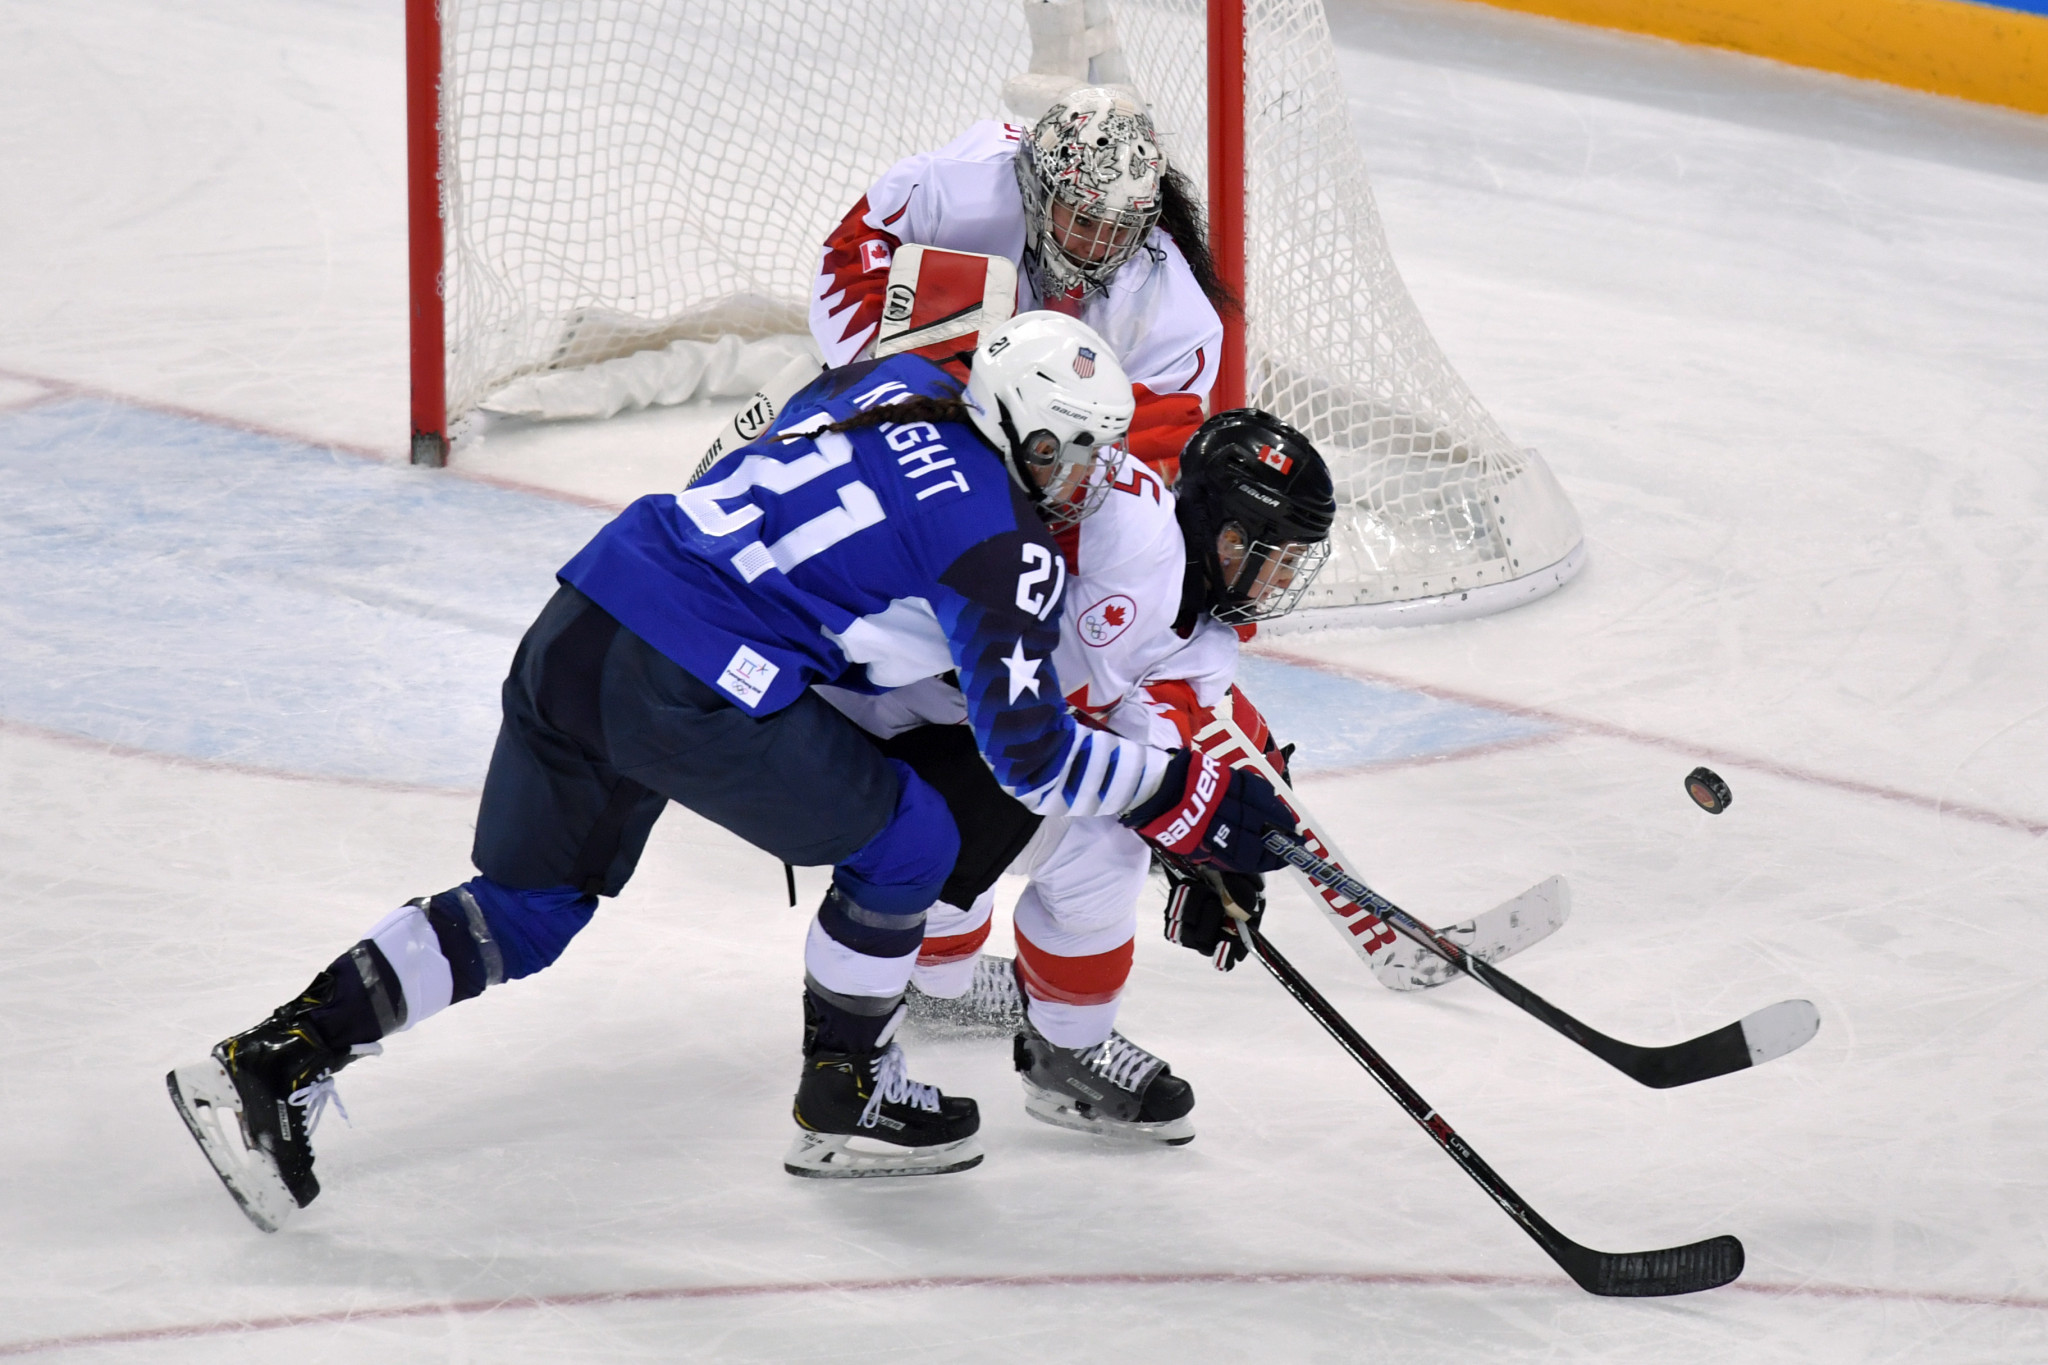 Qualification for the women's ice hockey contest at the Beijing 2022 Winter Olympic Games is due to start in December ©Getty Images